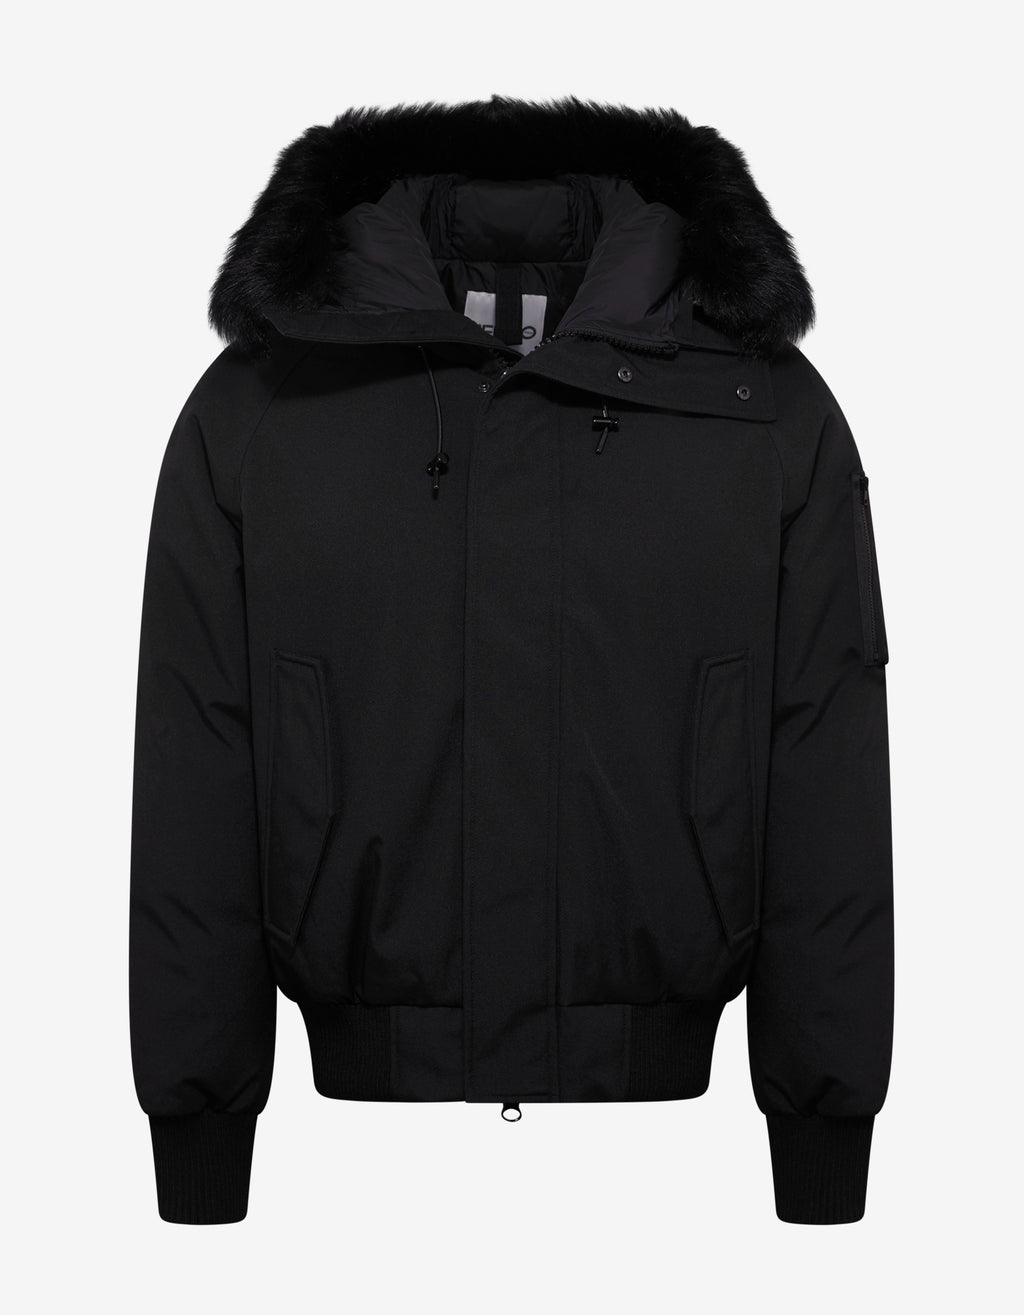 Black Short Down Parka Jacket